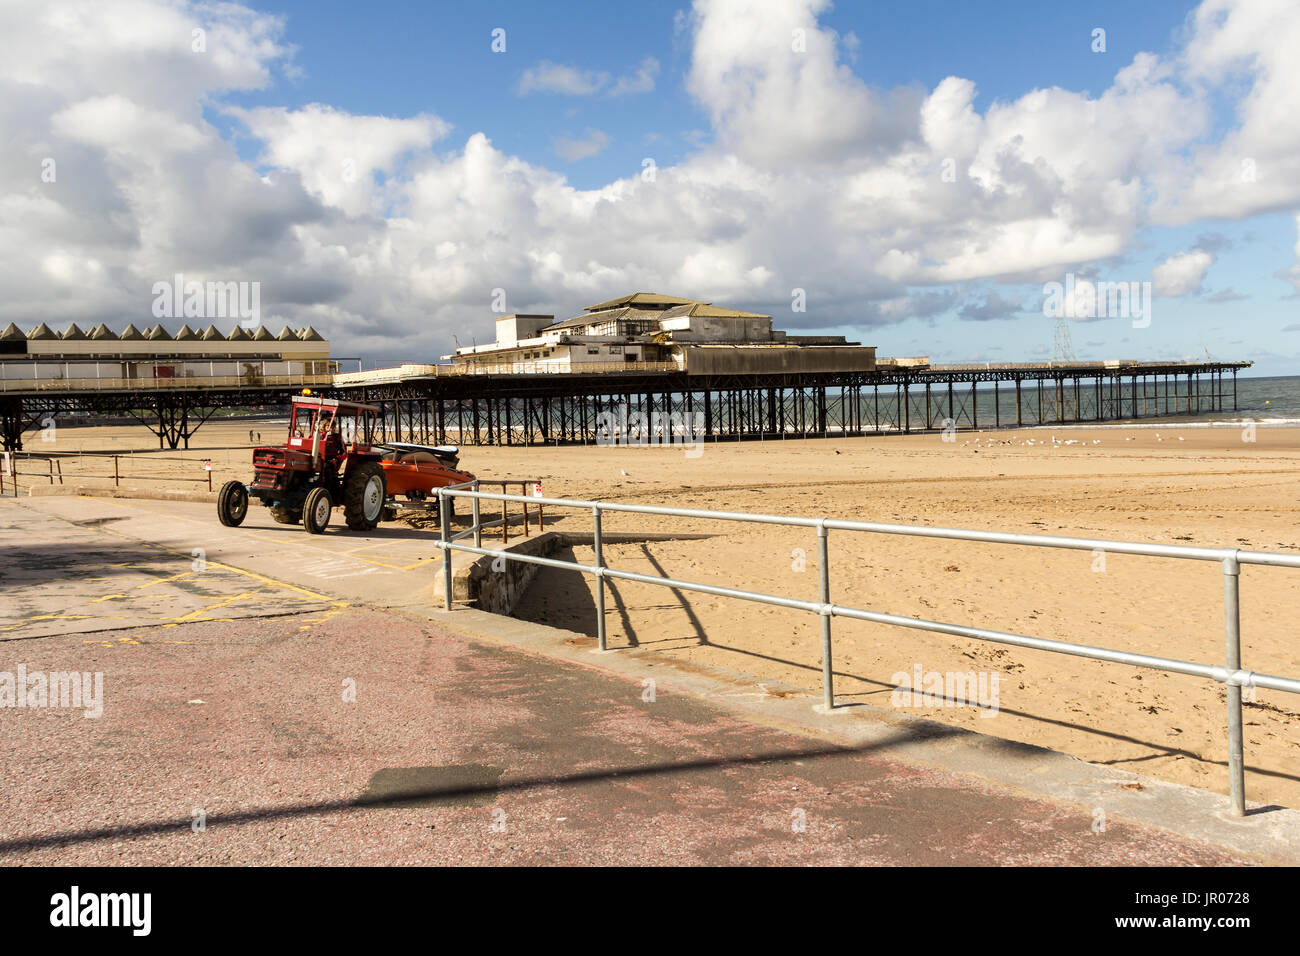 Tractor leaving the beach after cleaning the area, with Victoria Pier in the background in Colwyn Bay, north Wales.  The image was taken 14 Sept 2013 - Stock Image